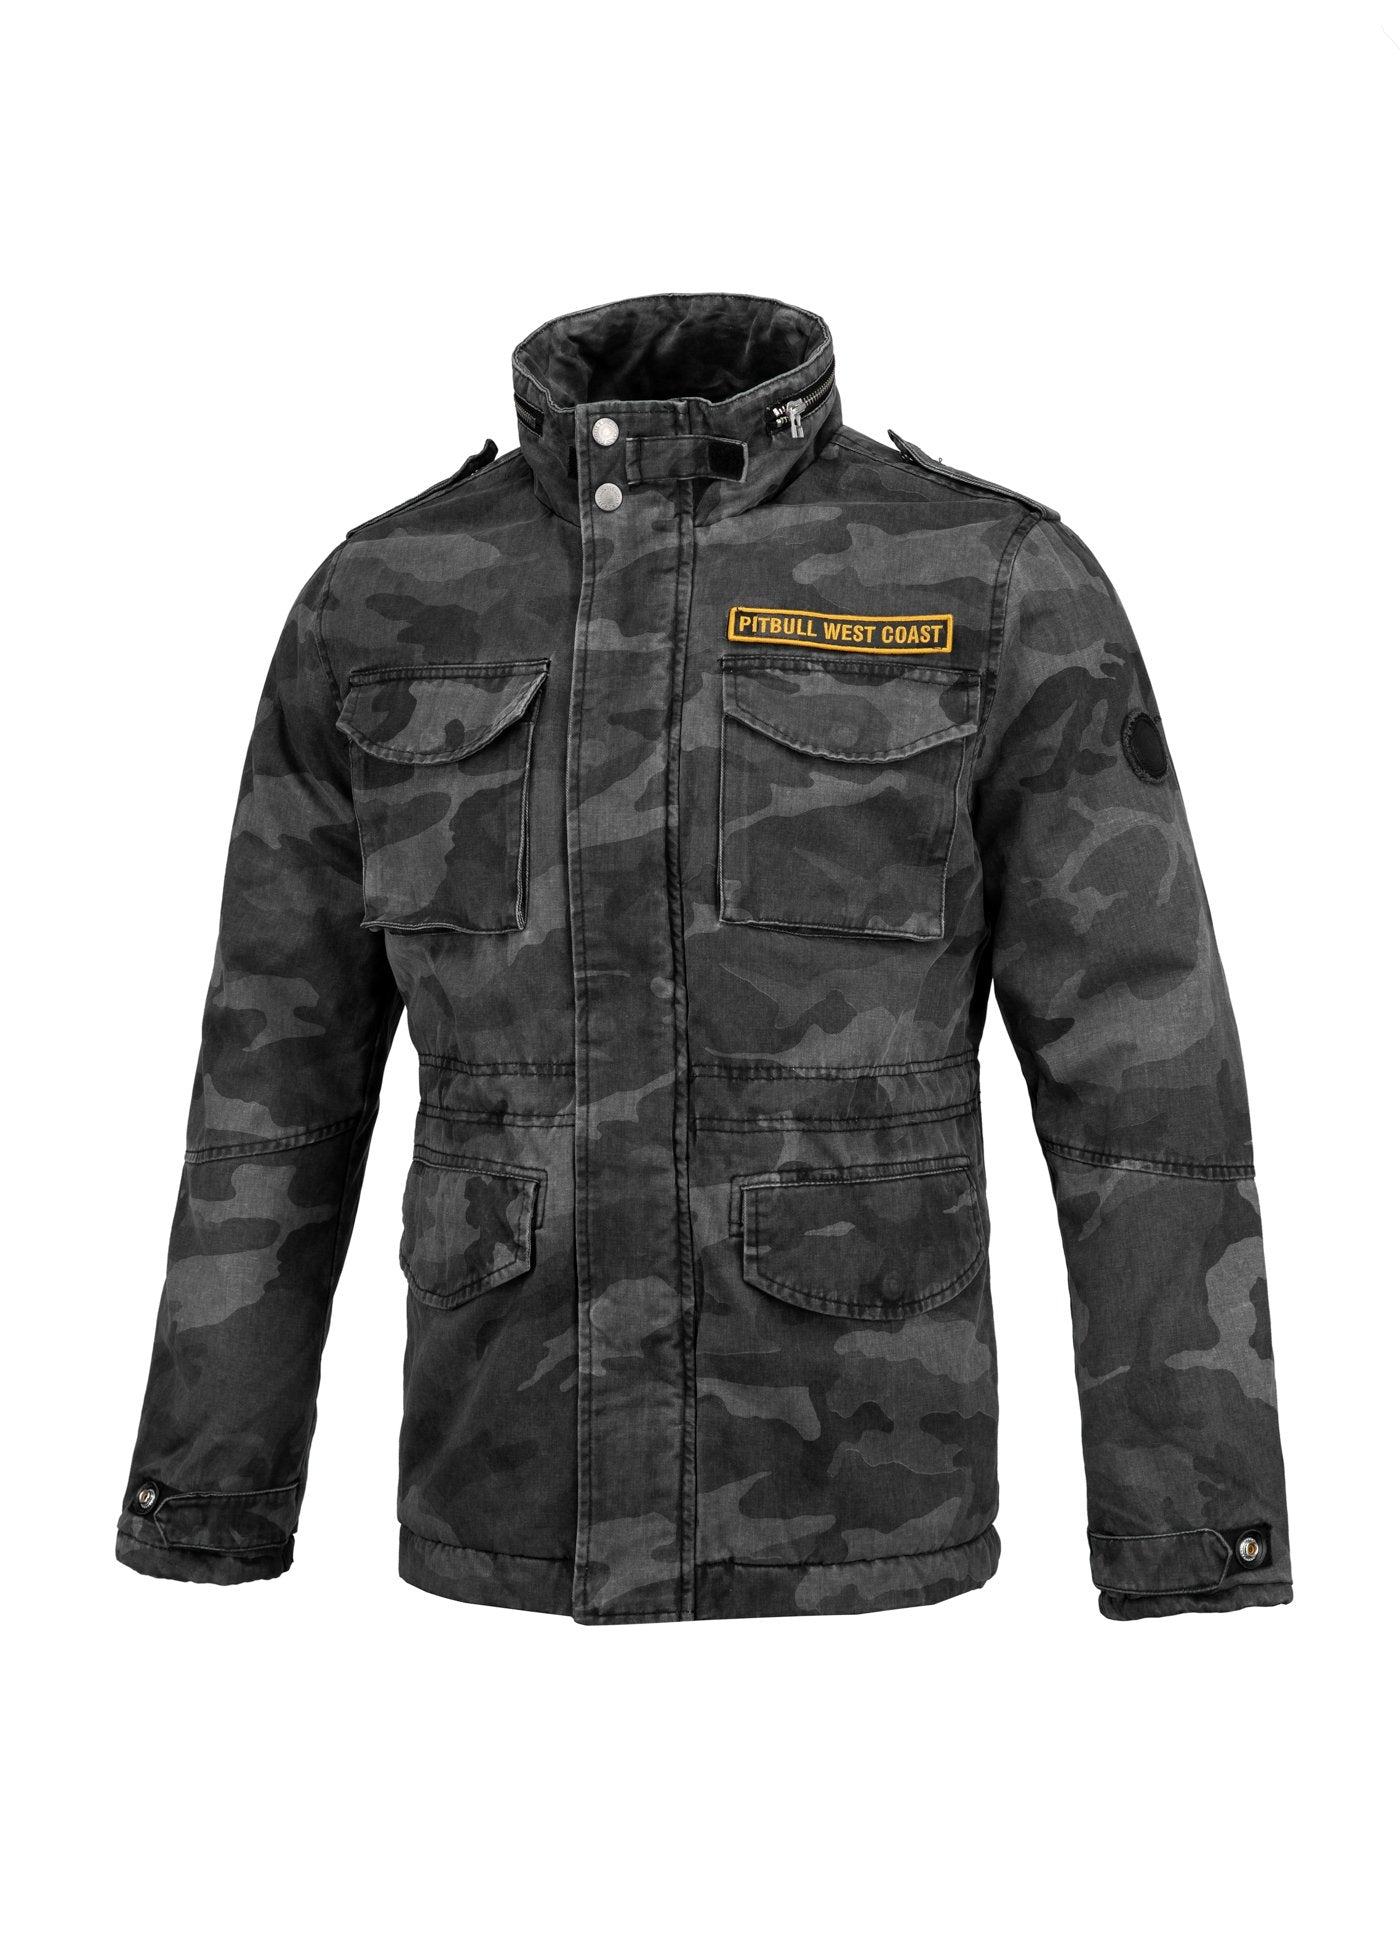 WINTER JACKET MONTEREY BACK CAMO - pitbullwestcoast